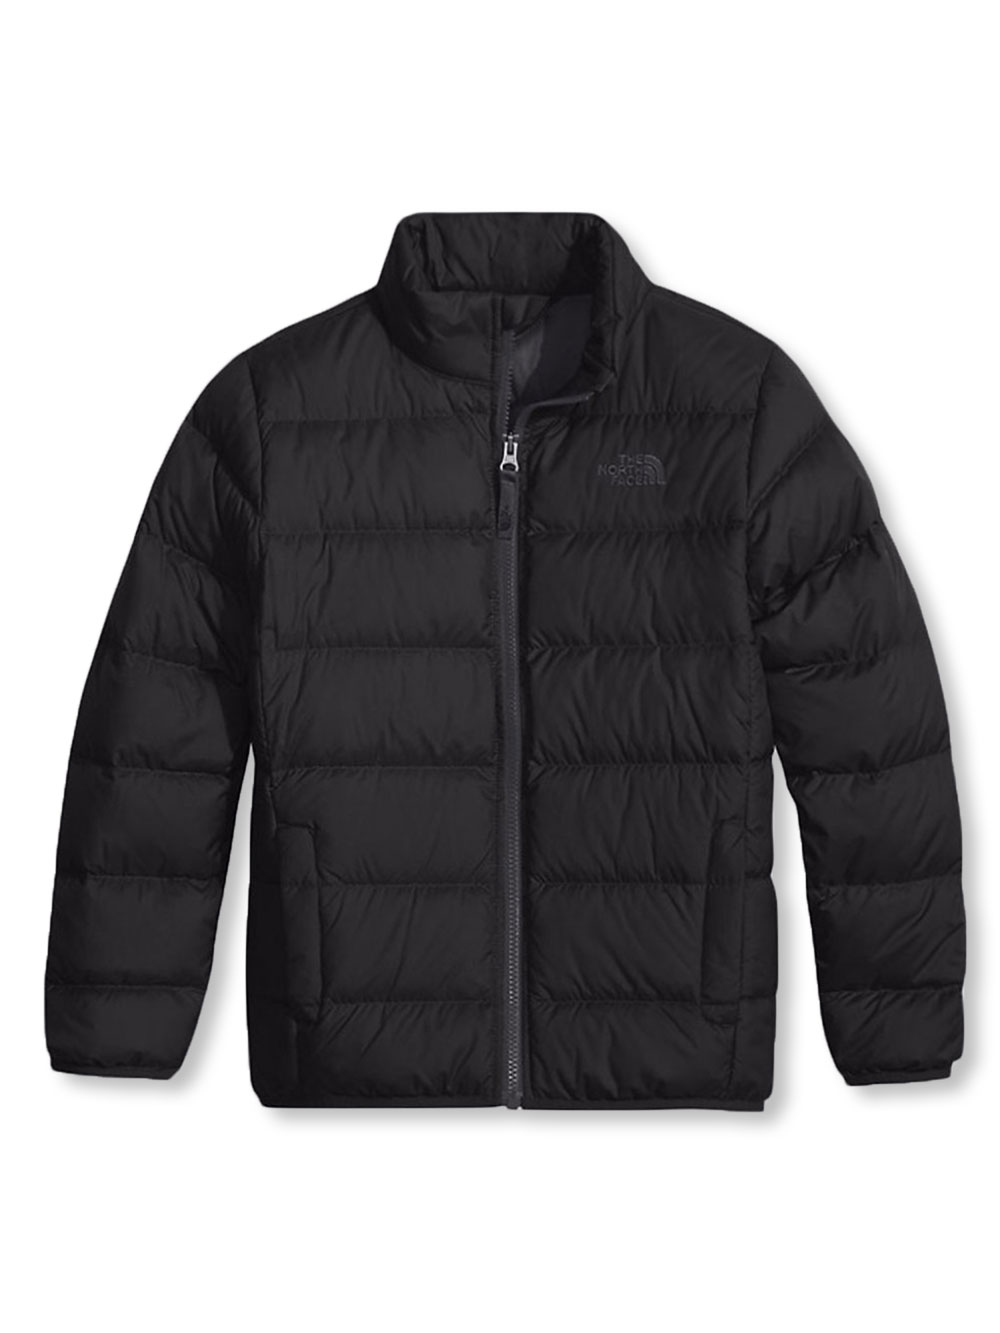 d188b7a40 Big Boys' Andes Down Jacket by The North Face in black and cosmic ...